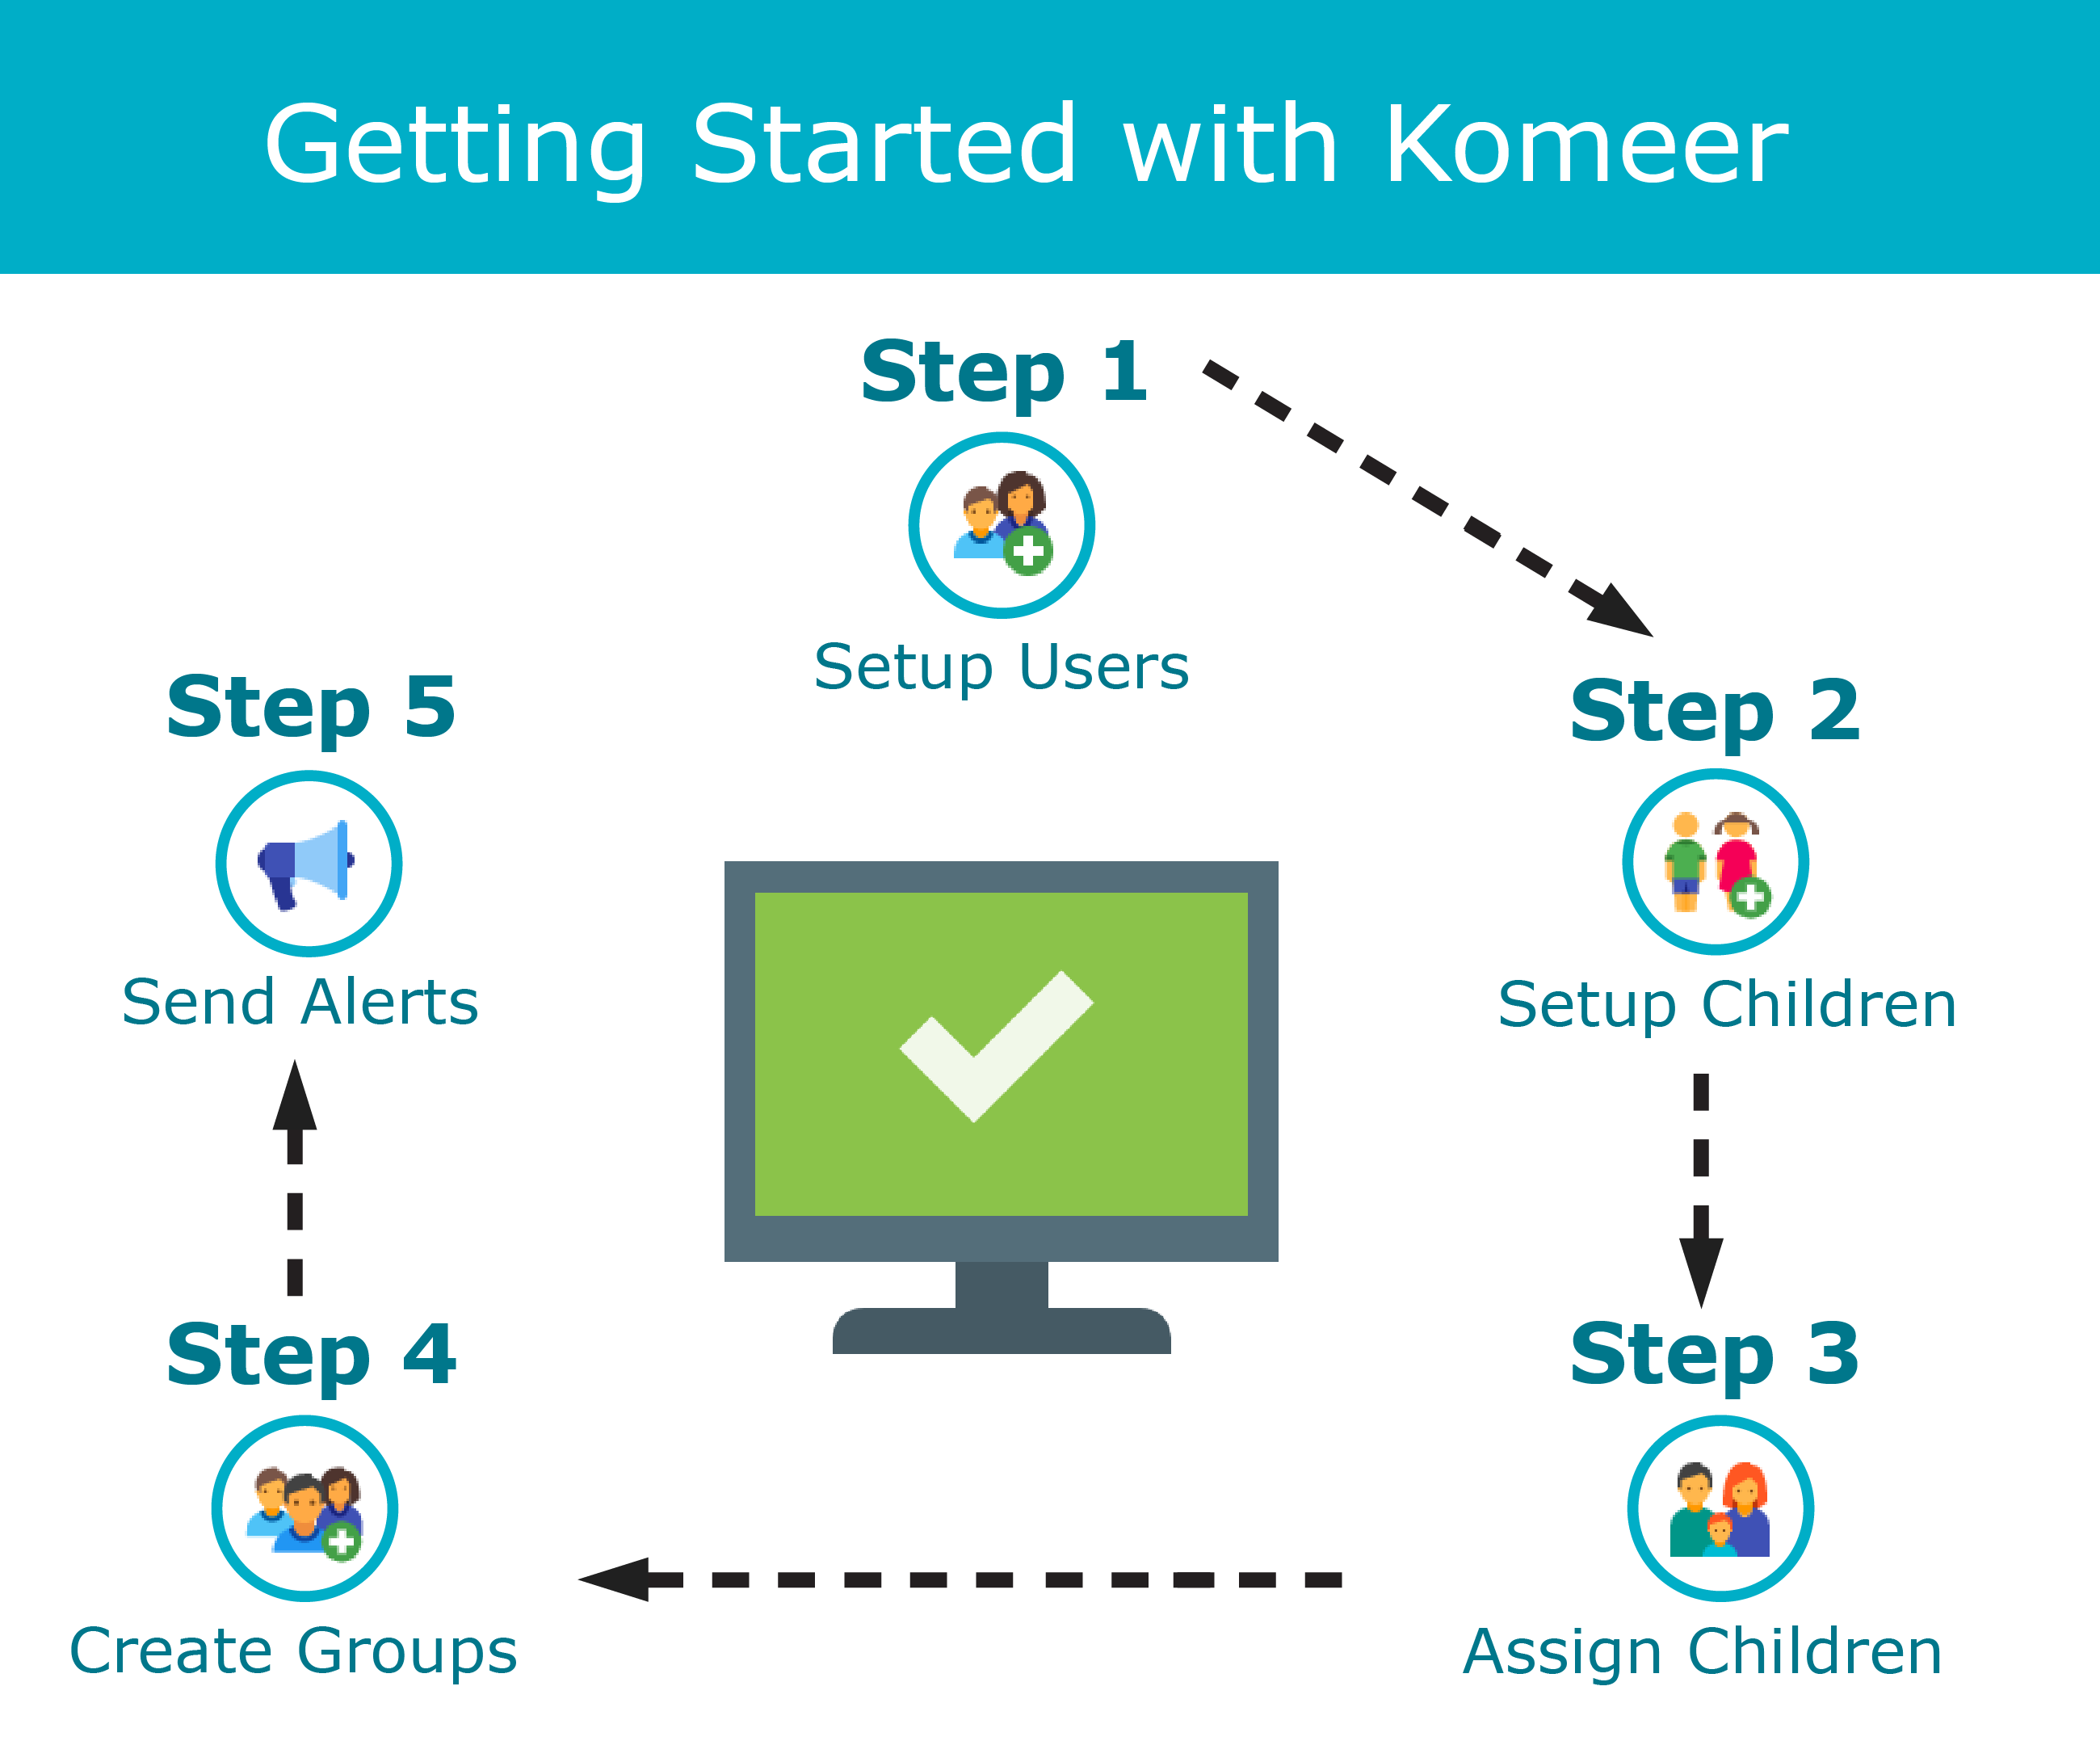 Getting started with Komeer 5 step guide